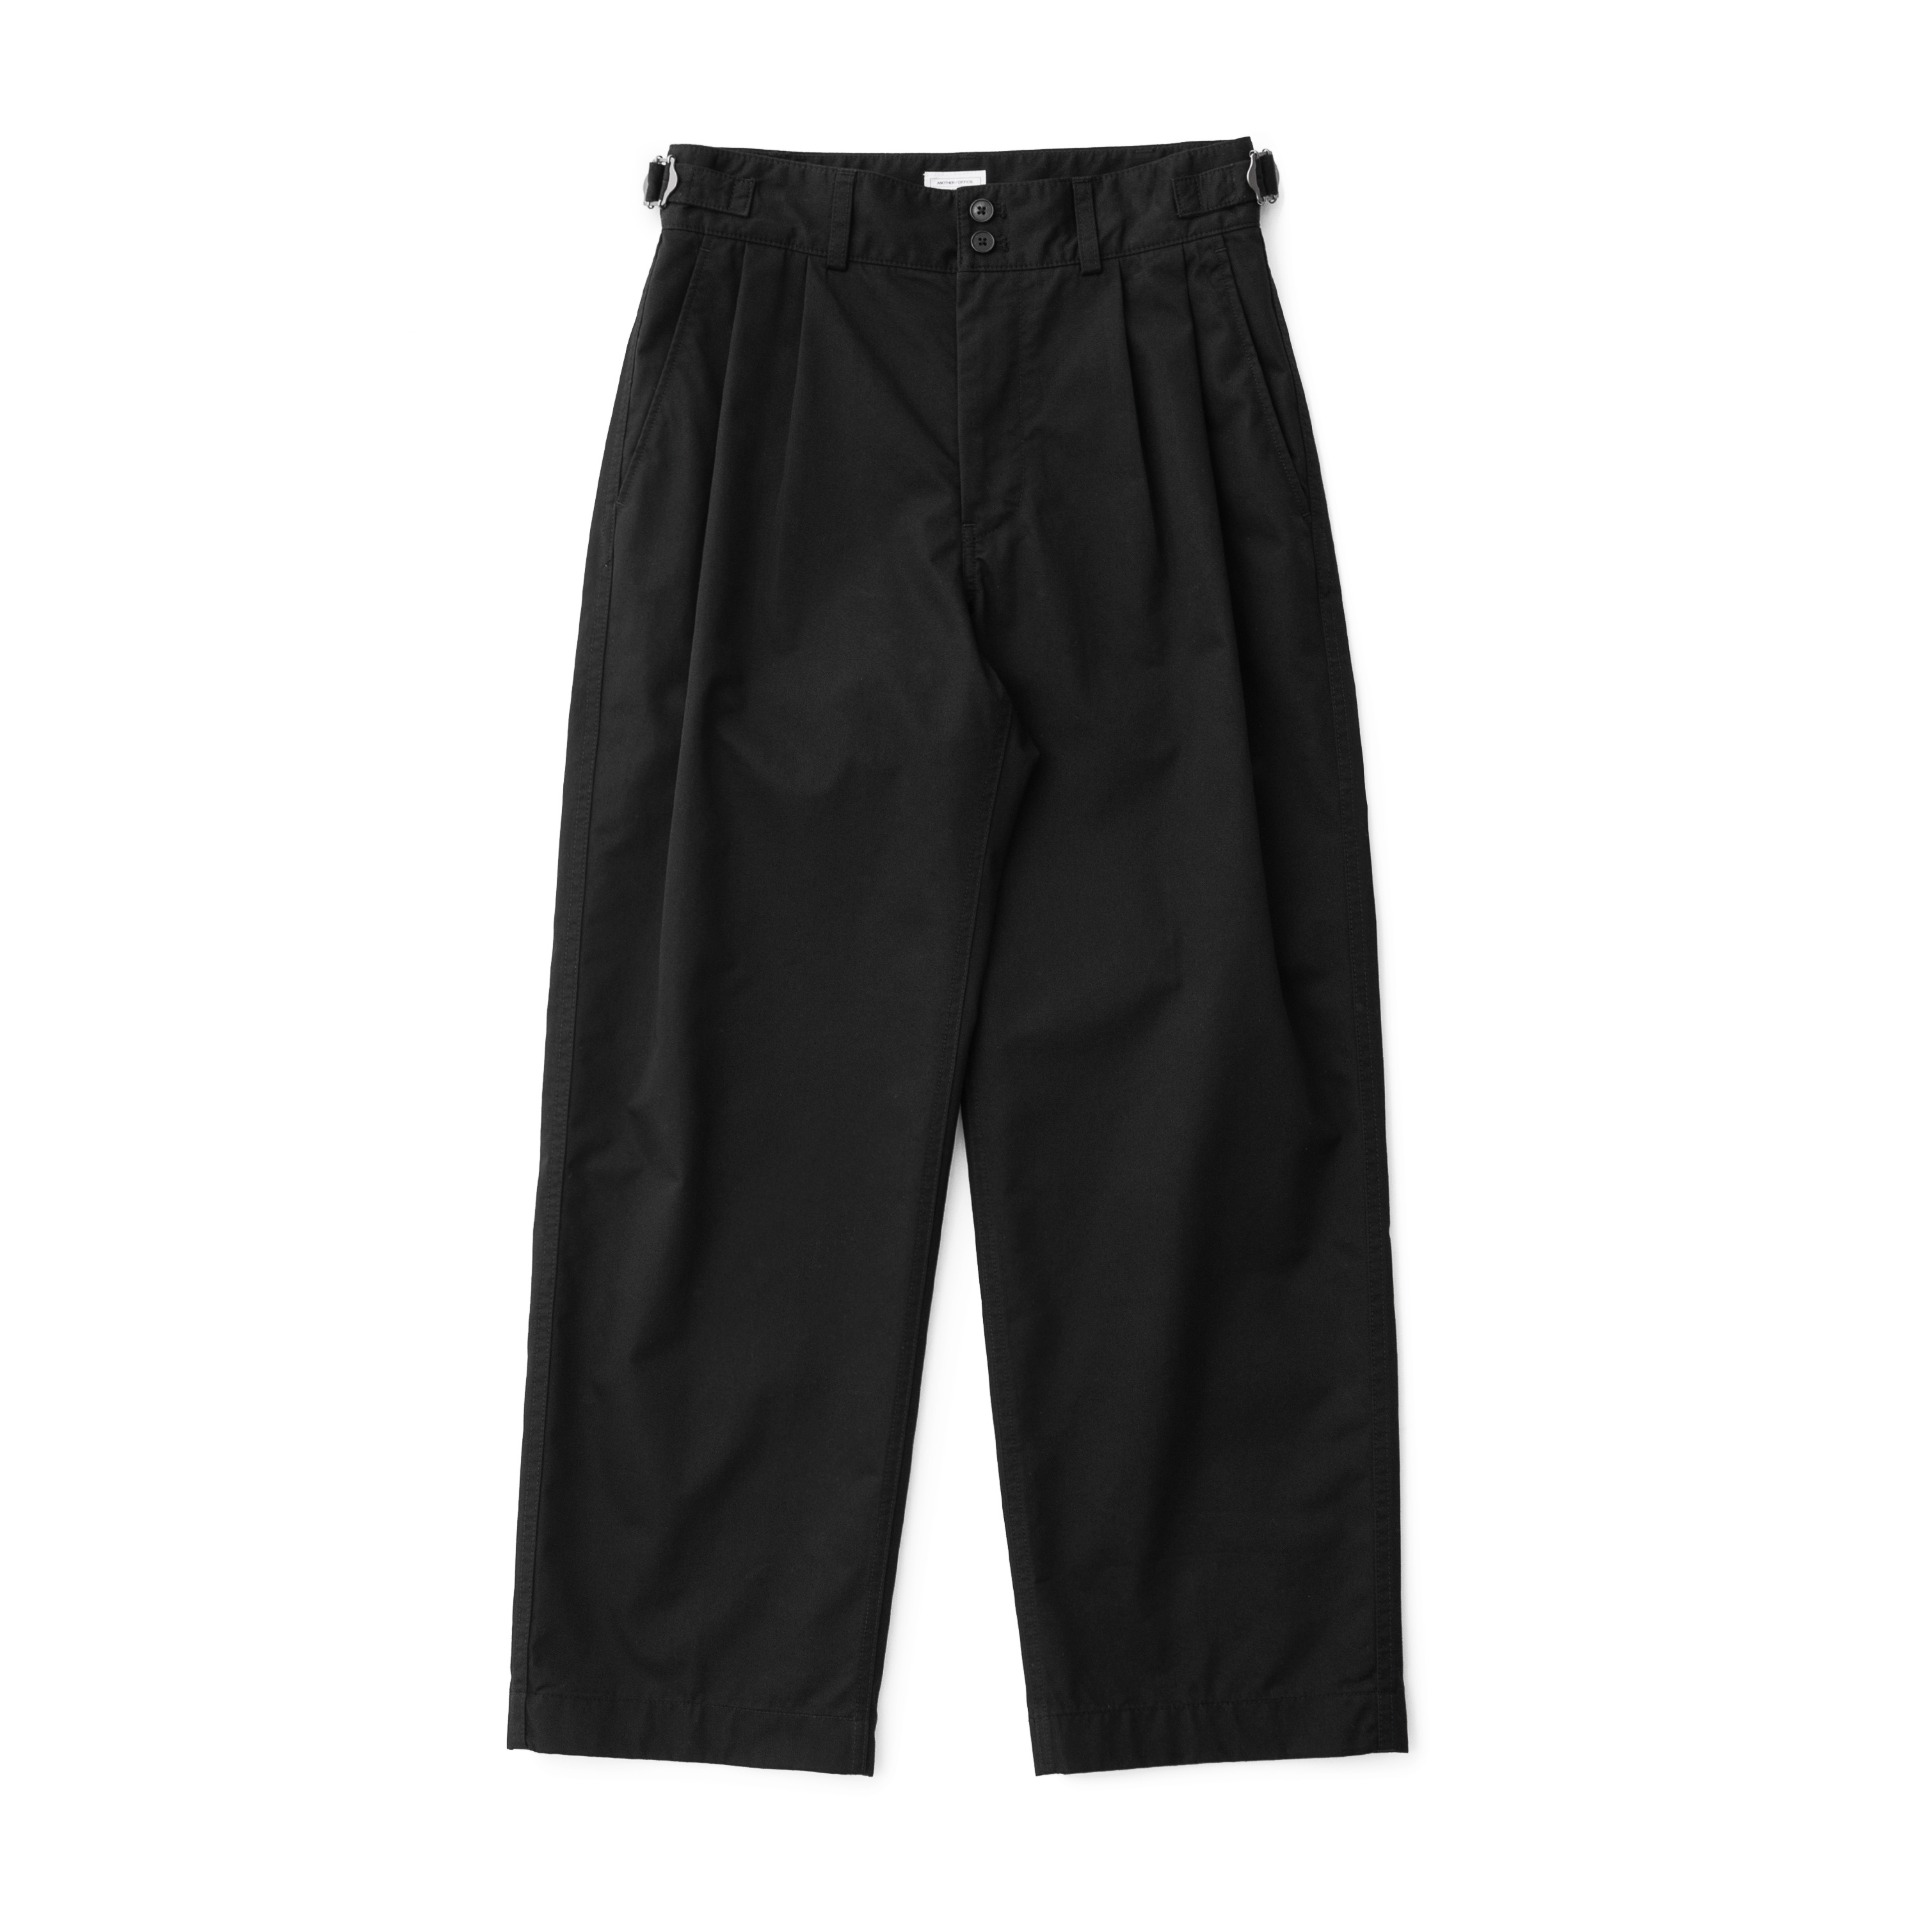 A/O 21SS SANTIAGO PANTS for Nest  (Black)